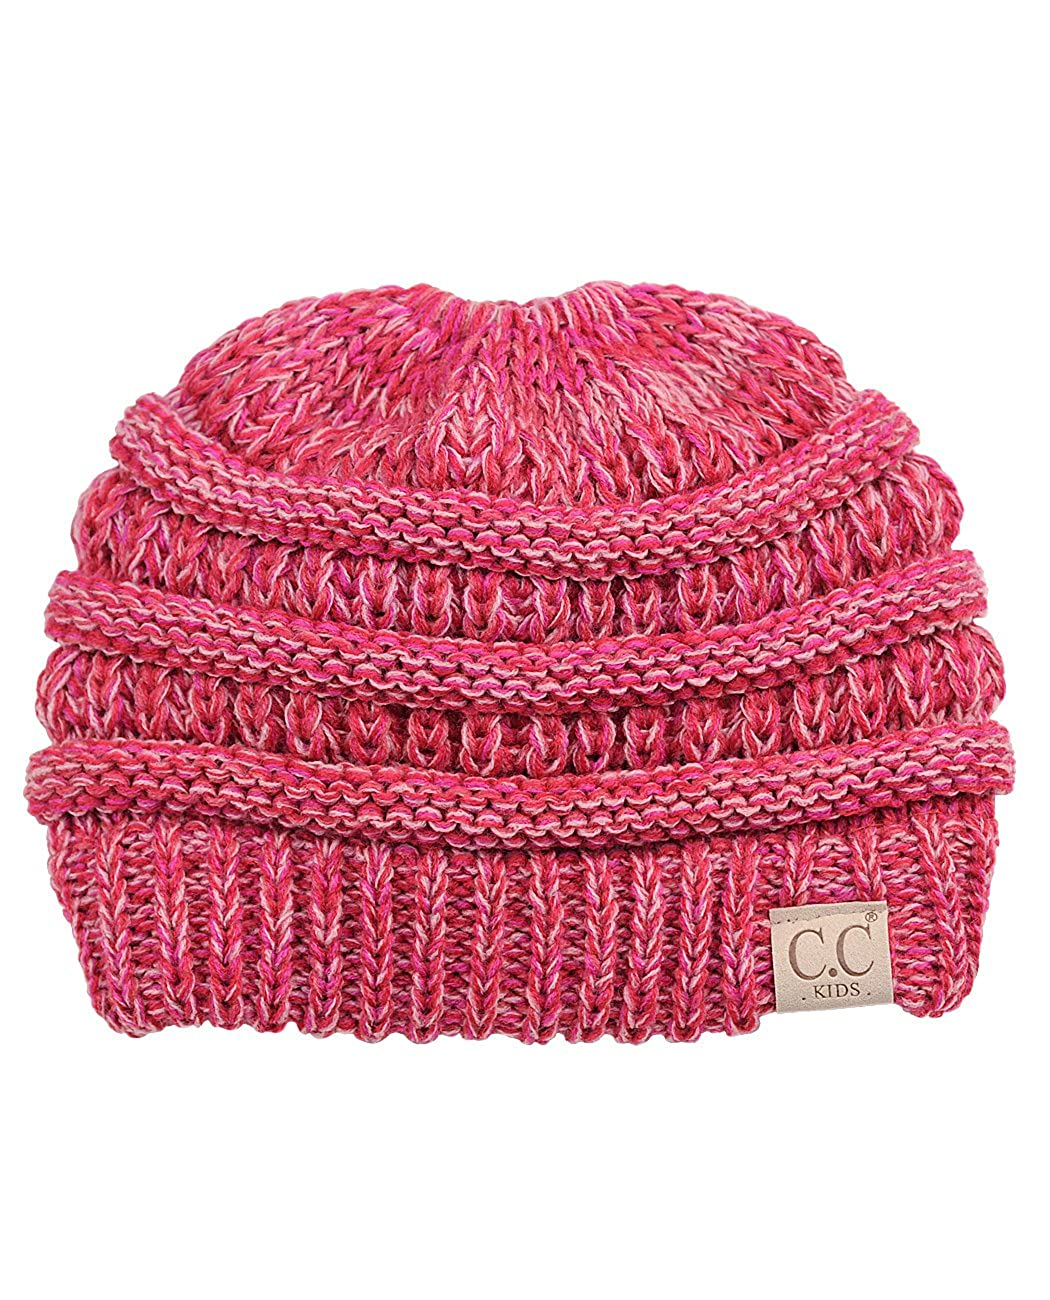 8f1b2f0b959 C.C BeanieTail Kids' Children's Soft Cable Knit Messy High Bun Ponytail  Beanie Hat, 3 Tone Coral at Amazon Women's Clothing store: